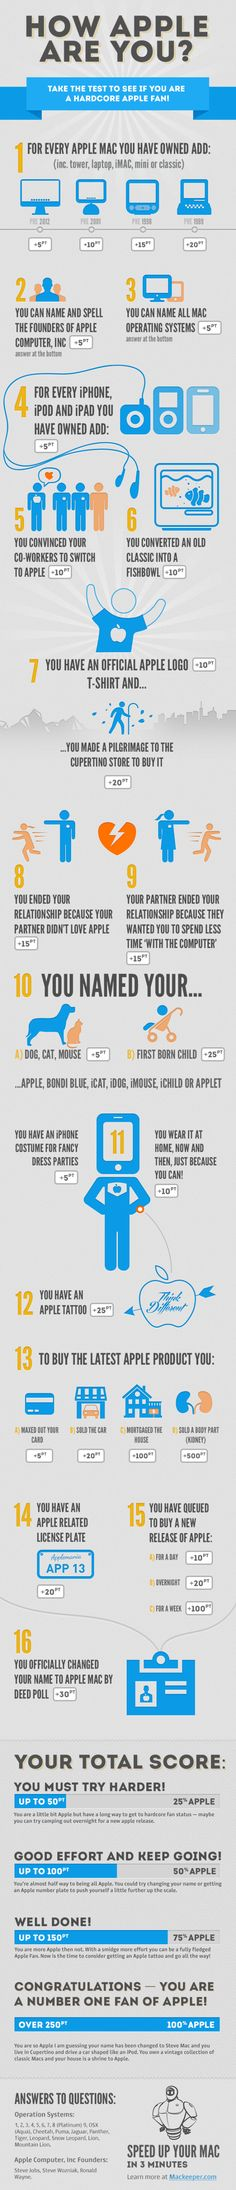 How Apple Are You? infographic